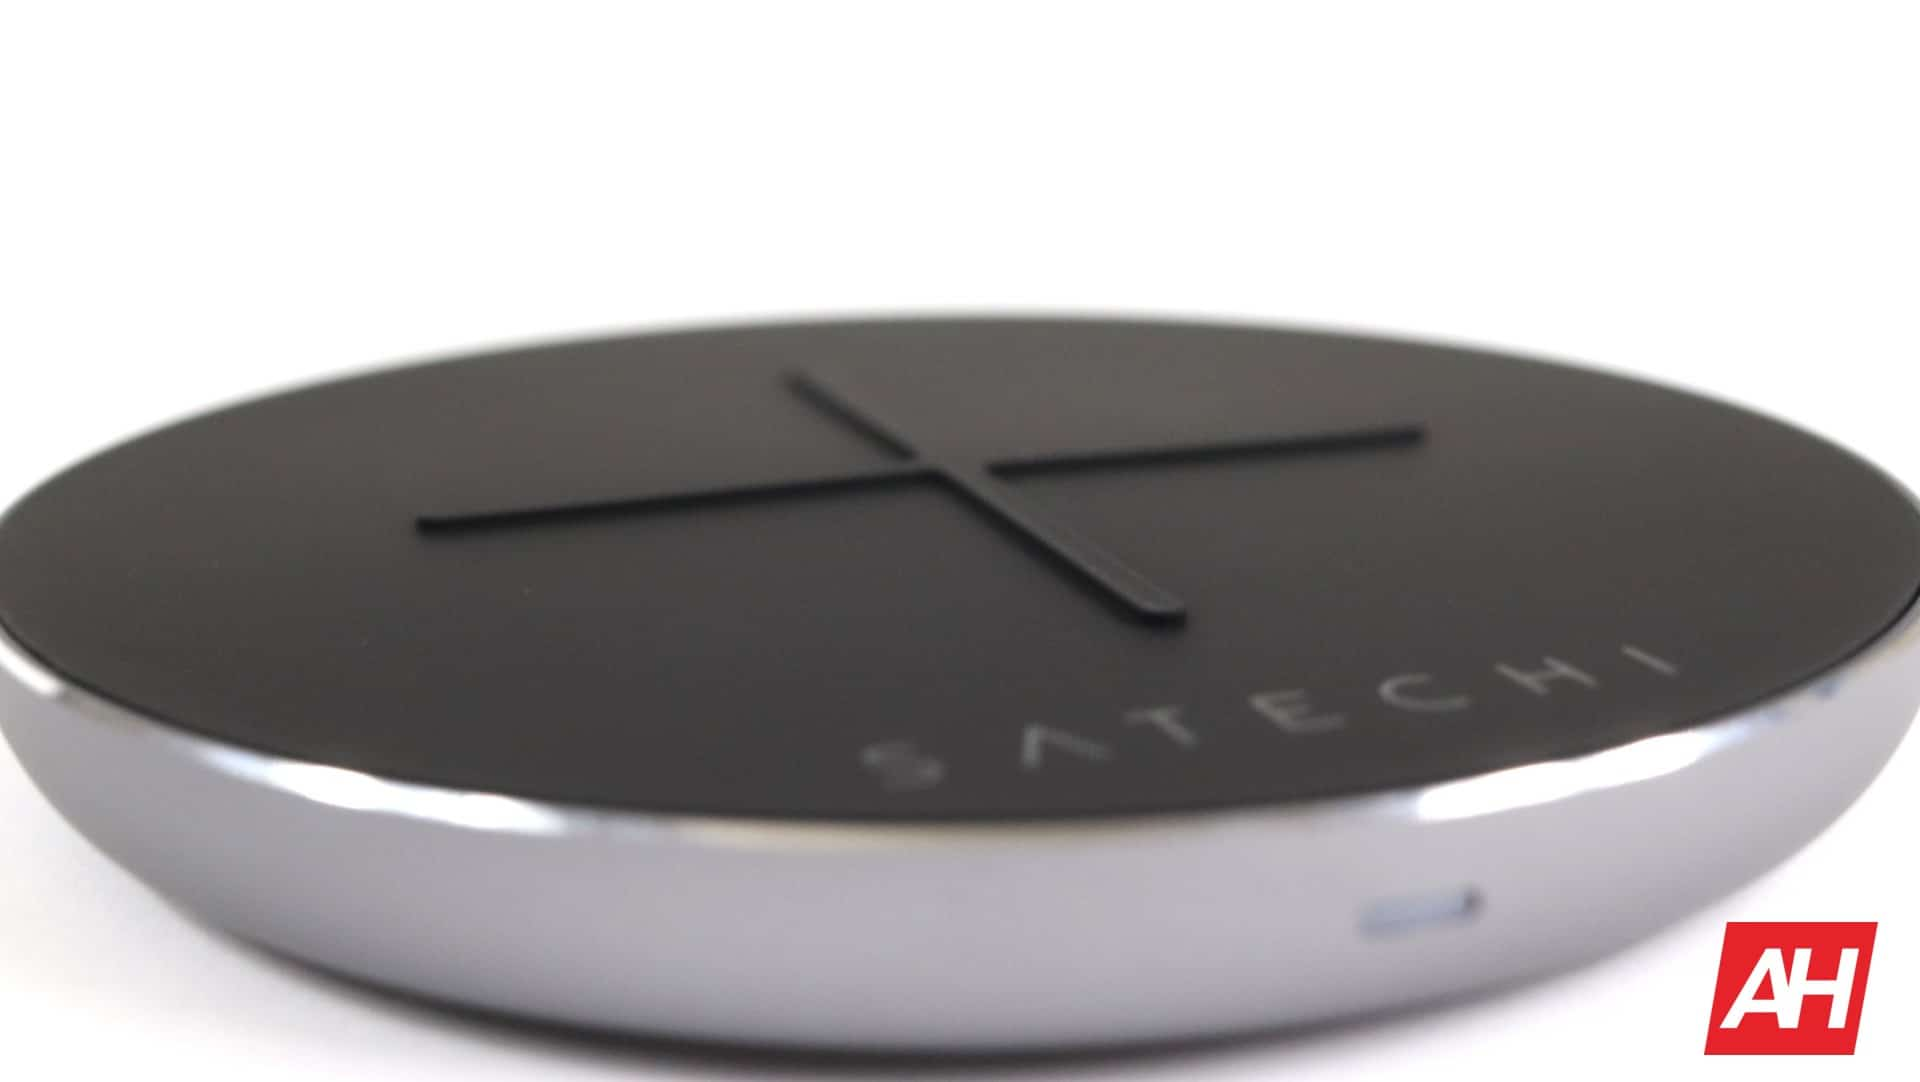 Satechi Wireless Charger V2 Review 06 AH